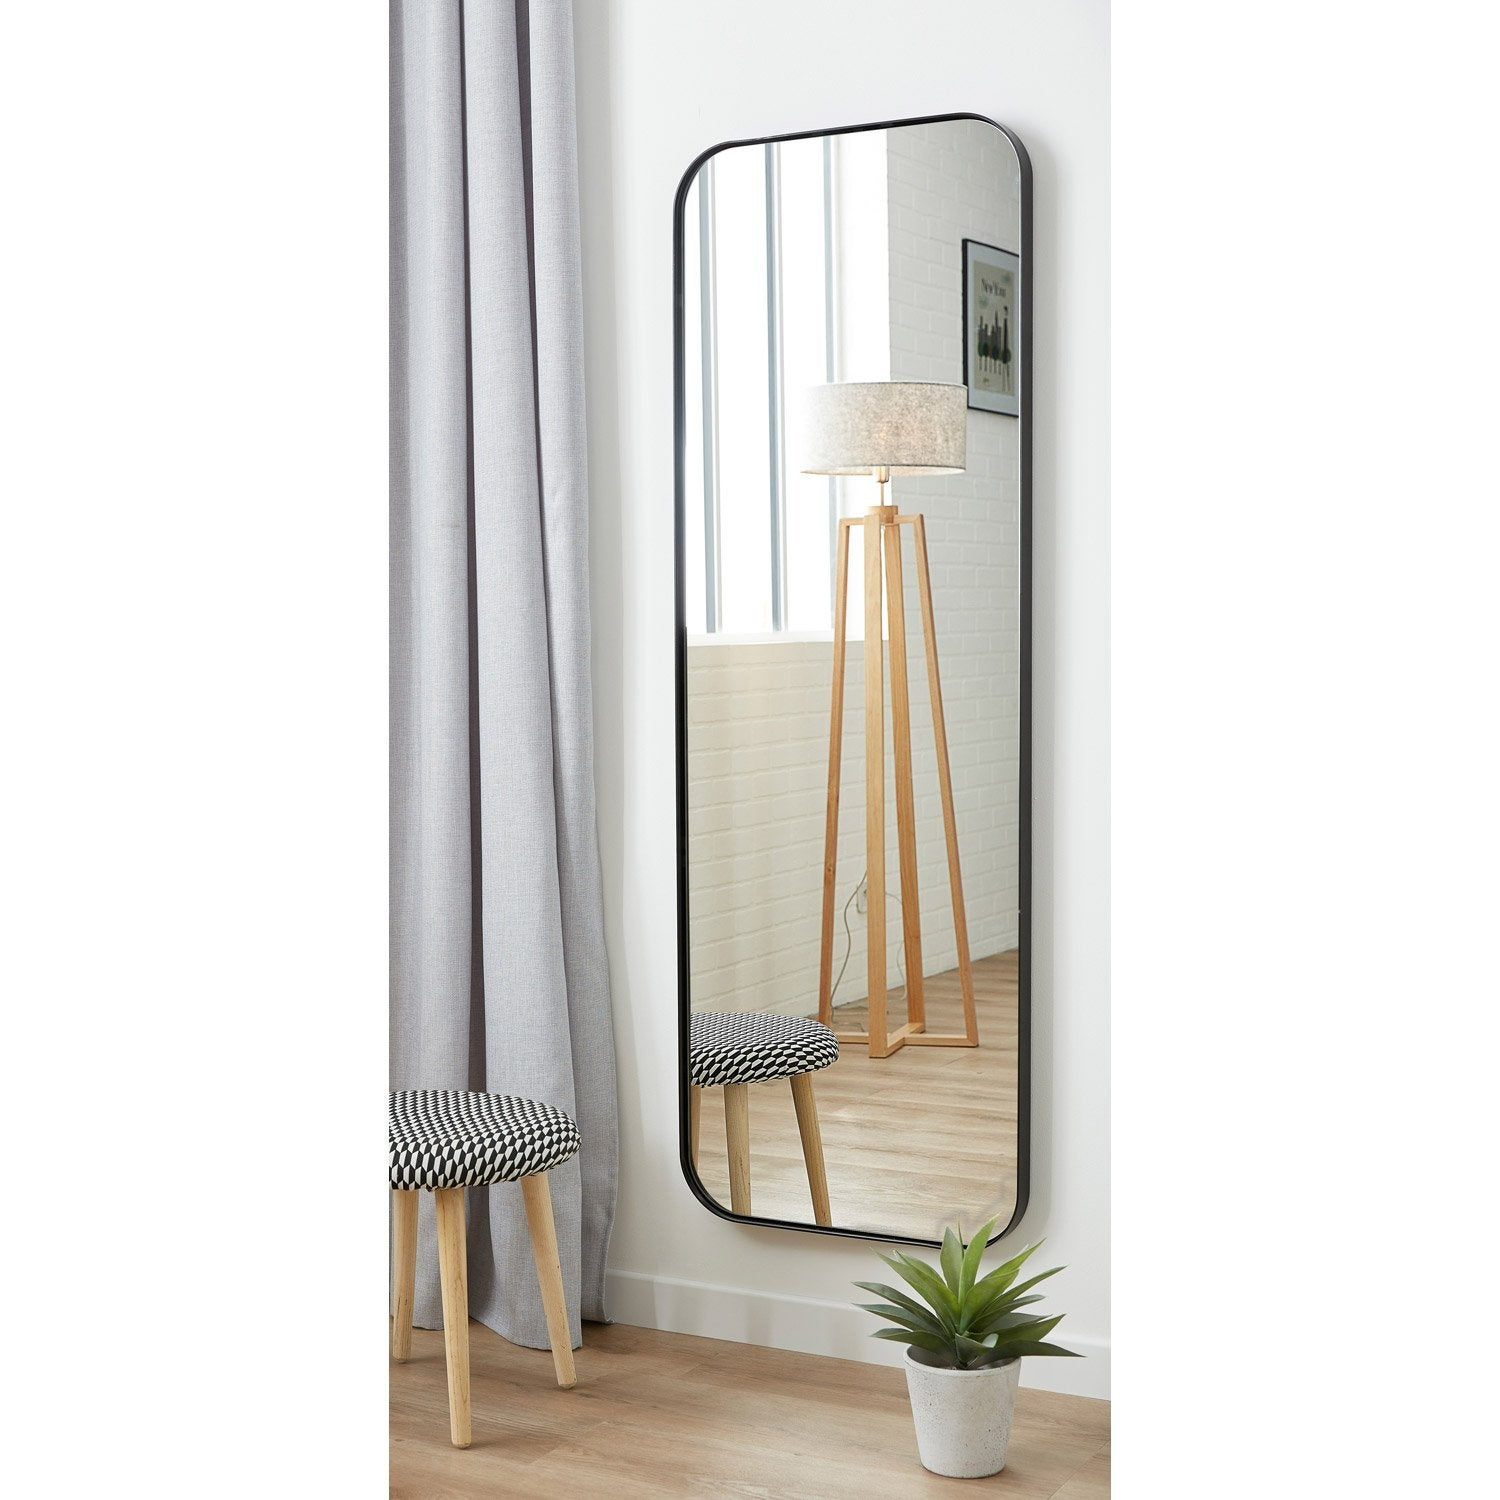 Accroche miroir leroy merlin maison design for Leroy merlin decoupe miroir